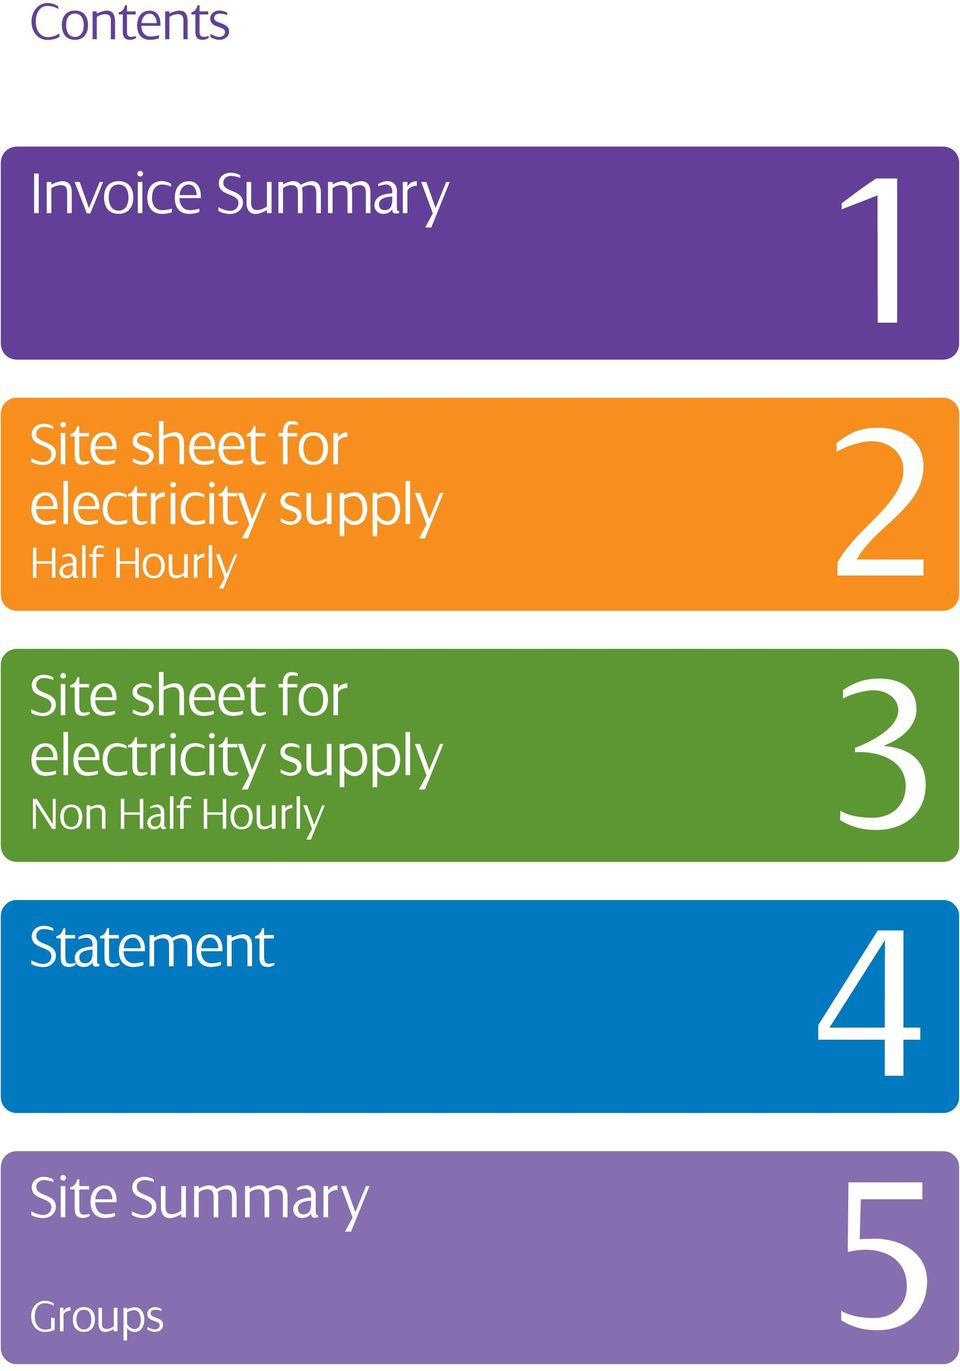 Site sheet for electricity supply Non